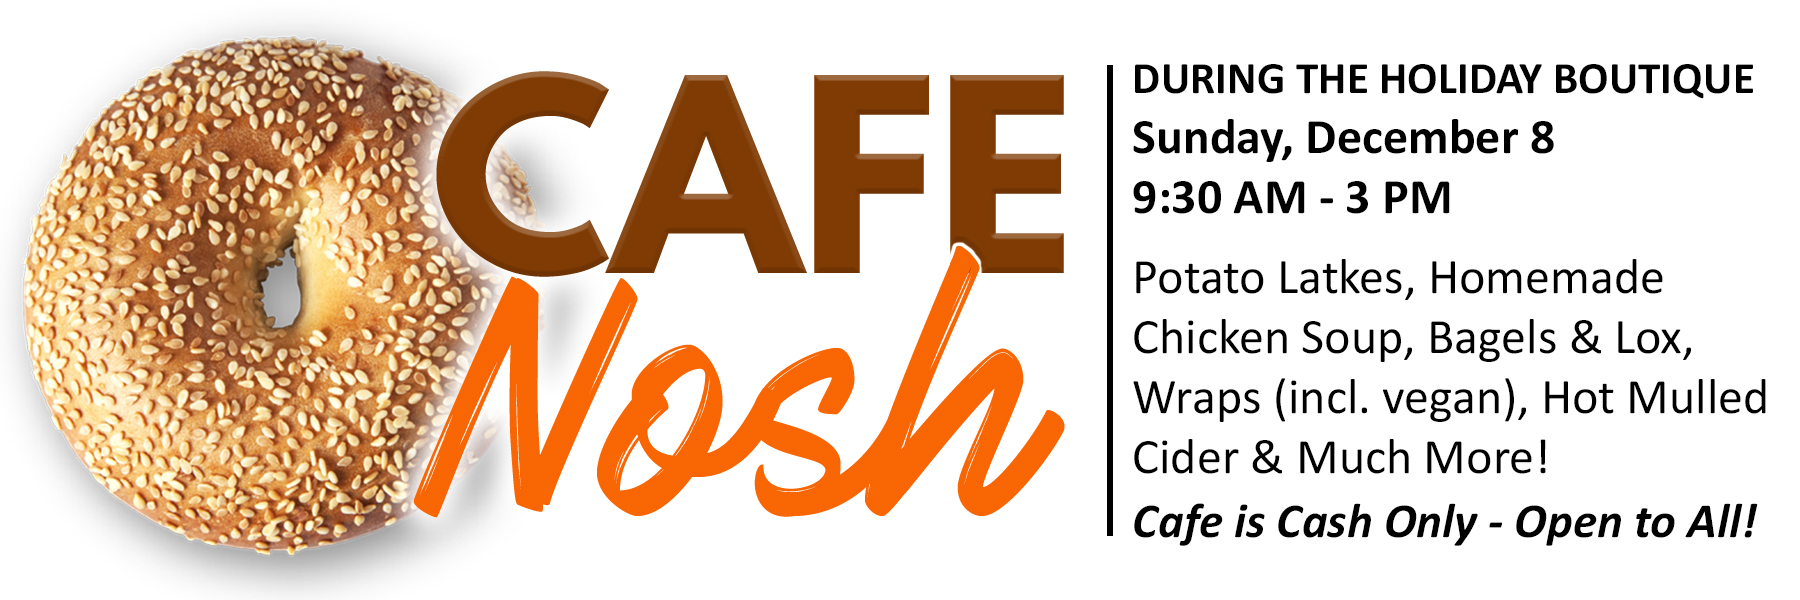 """<span class=""""slider_title"""">                                     Grab a Bite During the Holiday Boutique                                </span>                                                                                                                                                                                       <span class=""""slider_description"""">Whether you are shopping or you just want a delicious meal you don't have to cook, stop by Cafe Nosh this Sunday and grab a bite!  Bring the family or come on your own.  We'll be ready for you!</span>"""